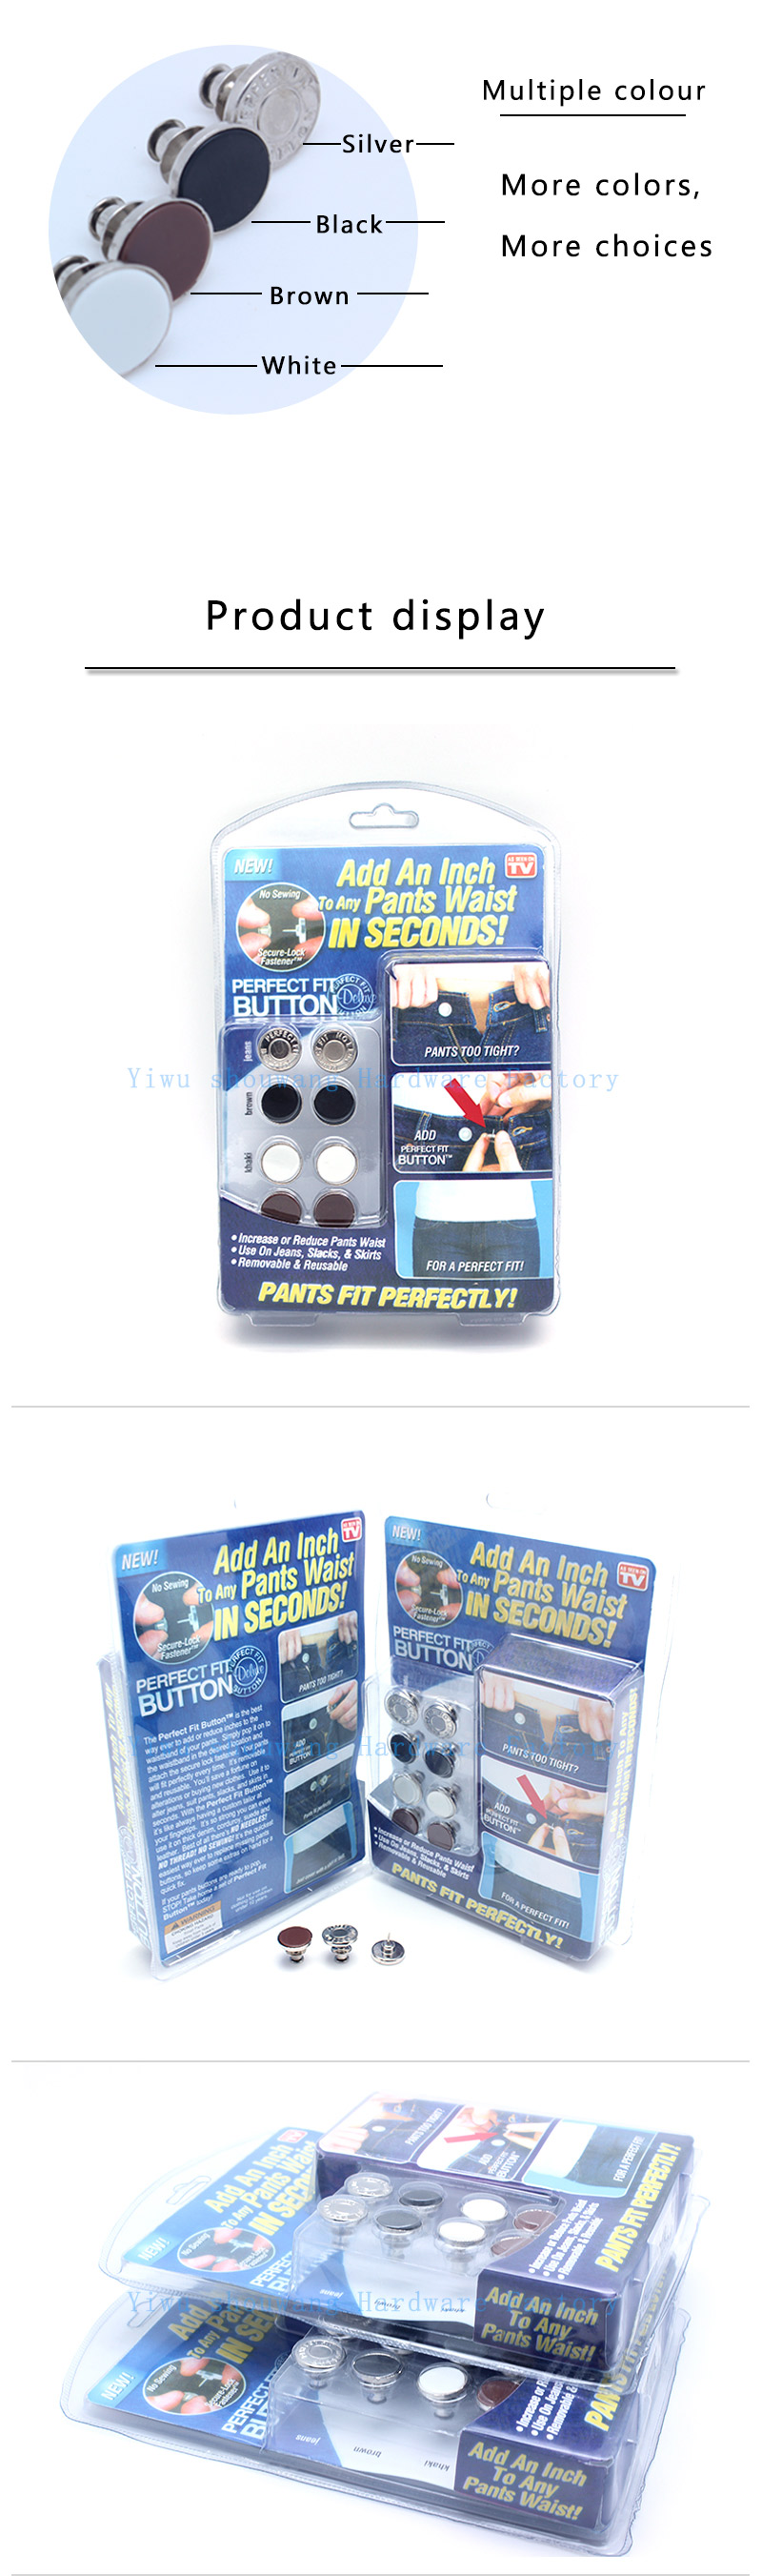 Source manufacturerproduction perfect Fit Instant Button - Adds an Inch to Any Pants Waist In Seconds TV button